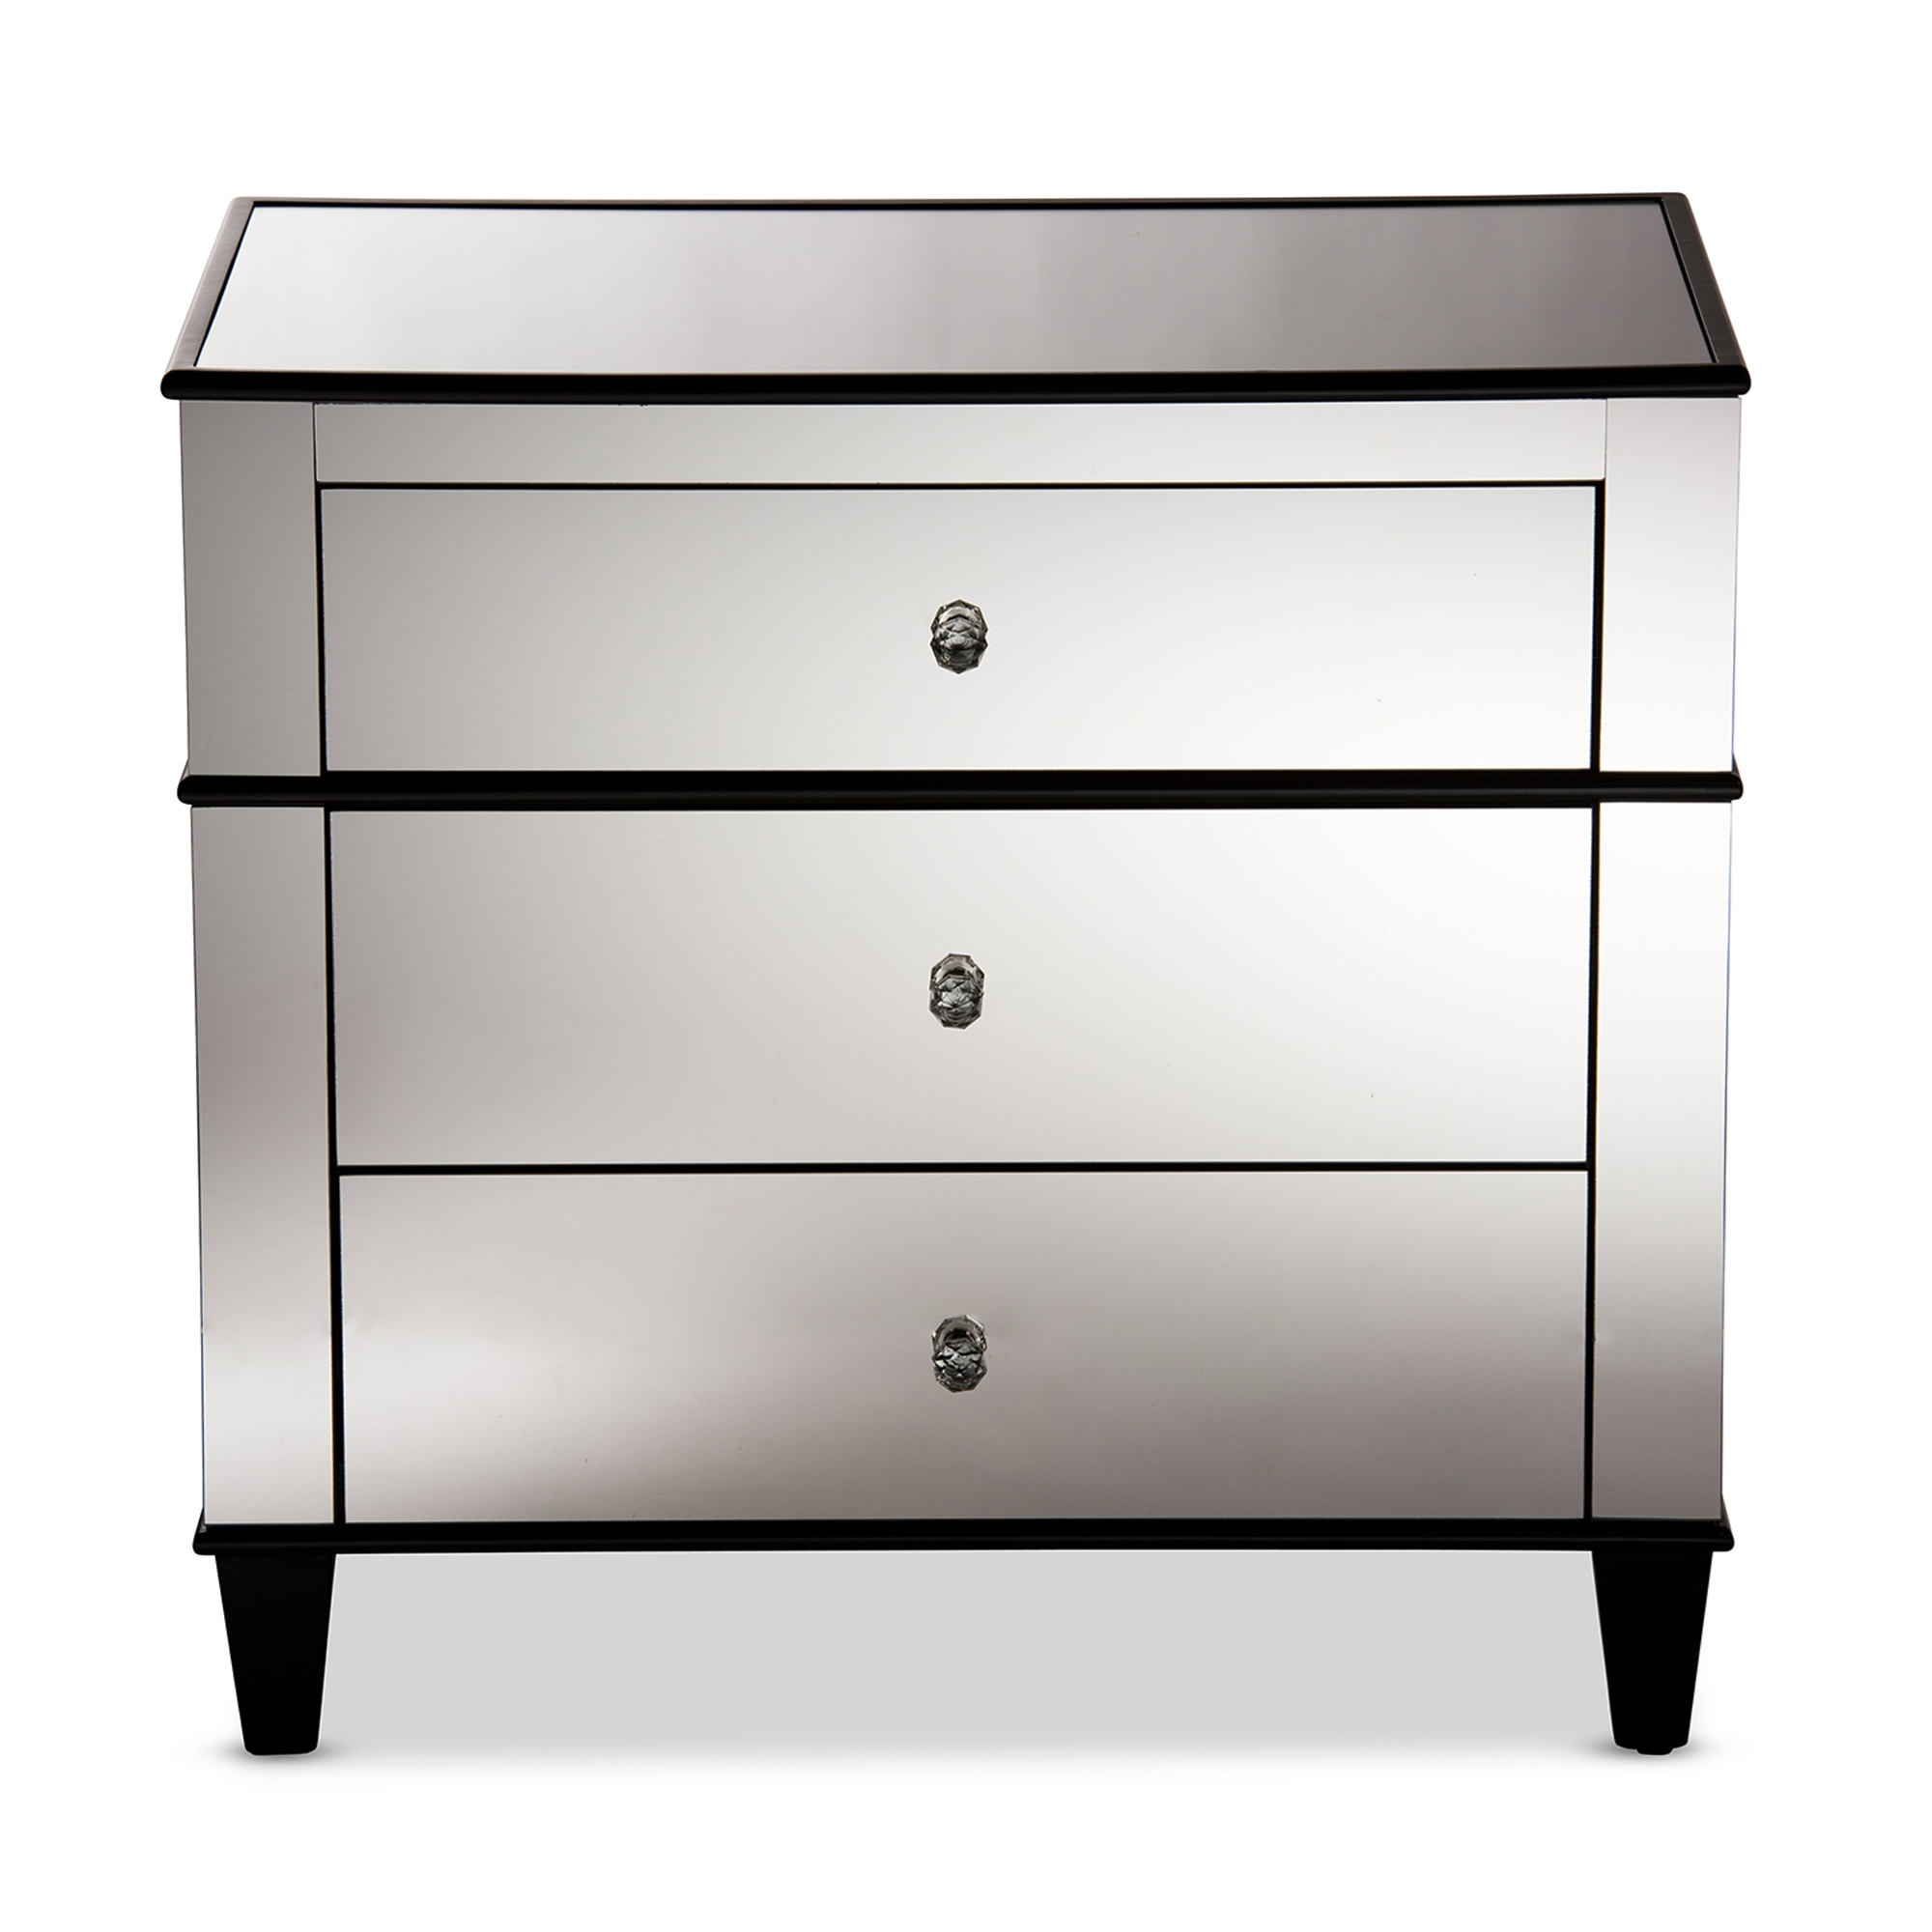 Baxton Studio Venetian Modern And Contemporary Hollywood Regency Glamour  Style 3 Drawer Mirrored Storage Chest